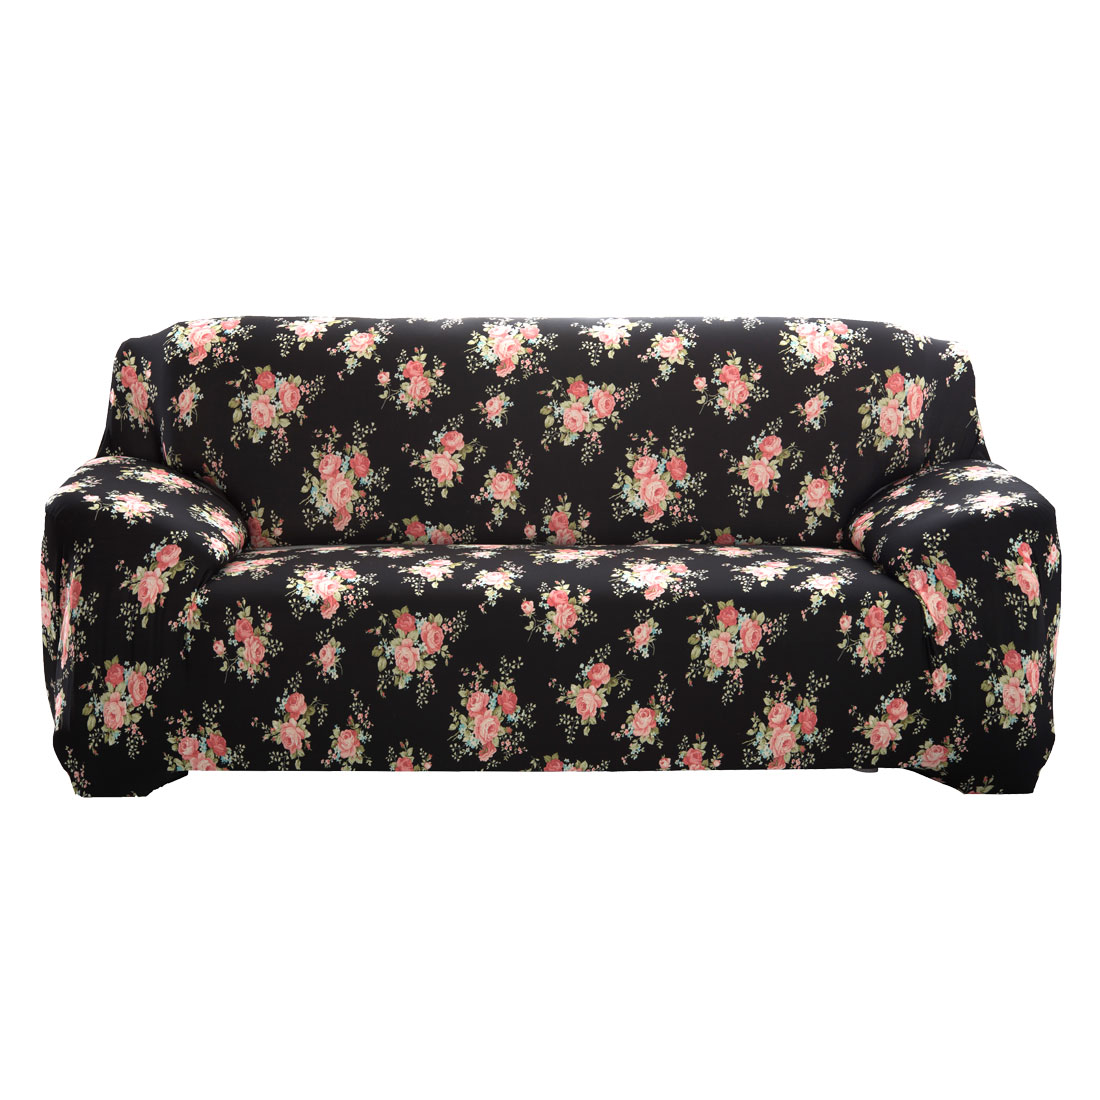 Household Polyester Rose Pattern Elastic Sofa Loveseat Cover Slipcover Protector 55-74 Inch